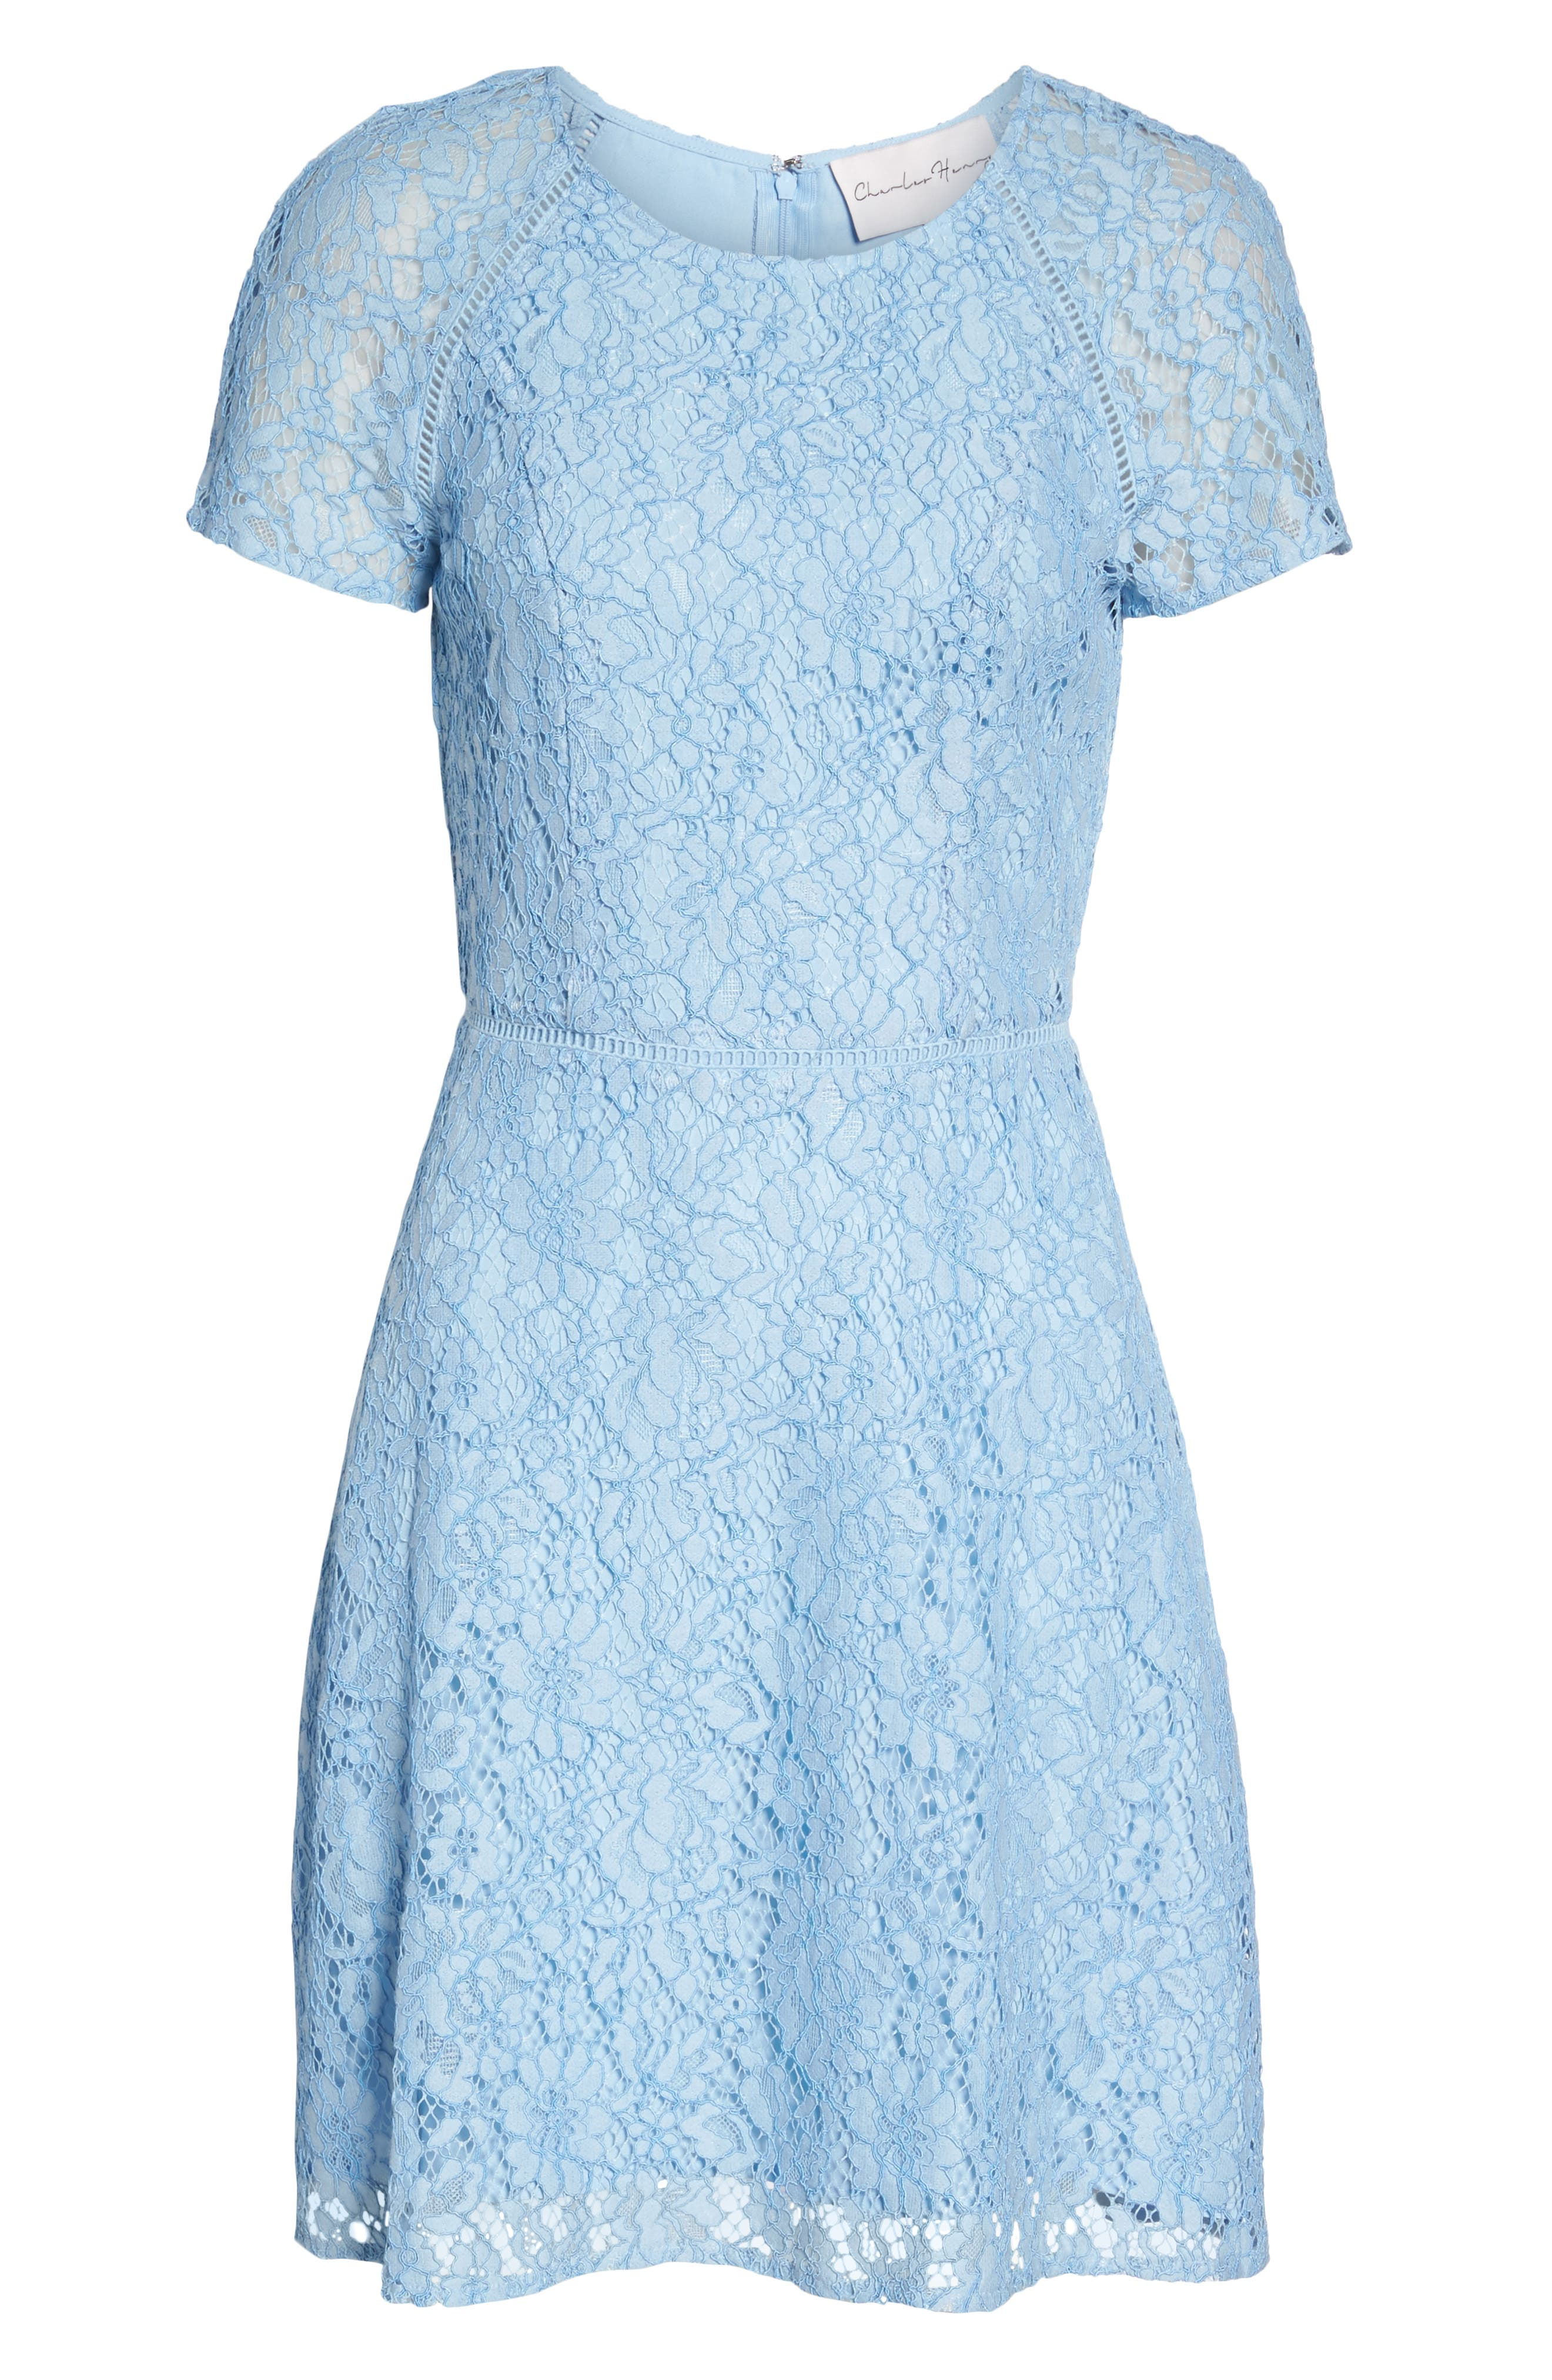 Raglan Sleeve Lace Dress,                             Alternate thumbnail 6, color,                             400